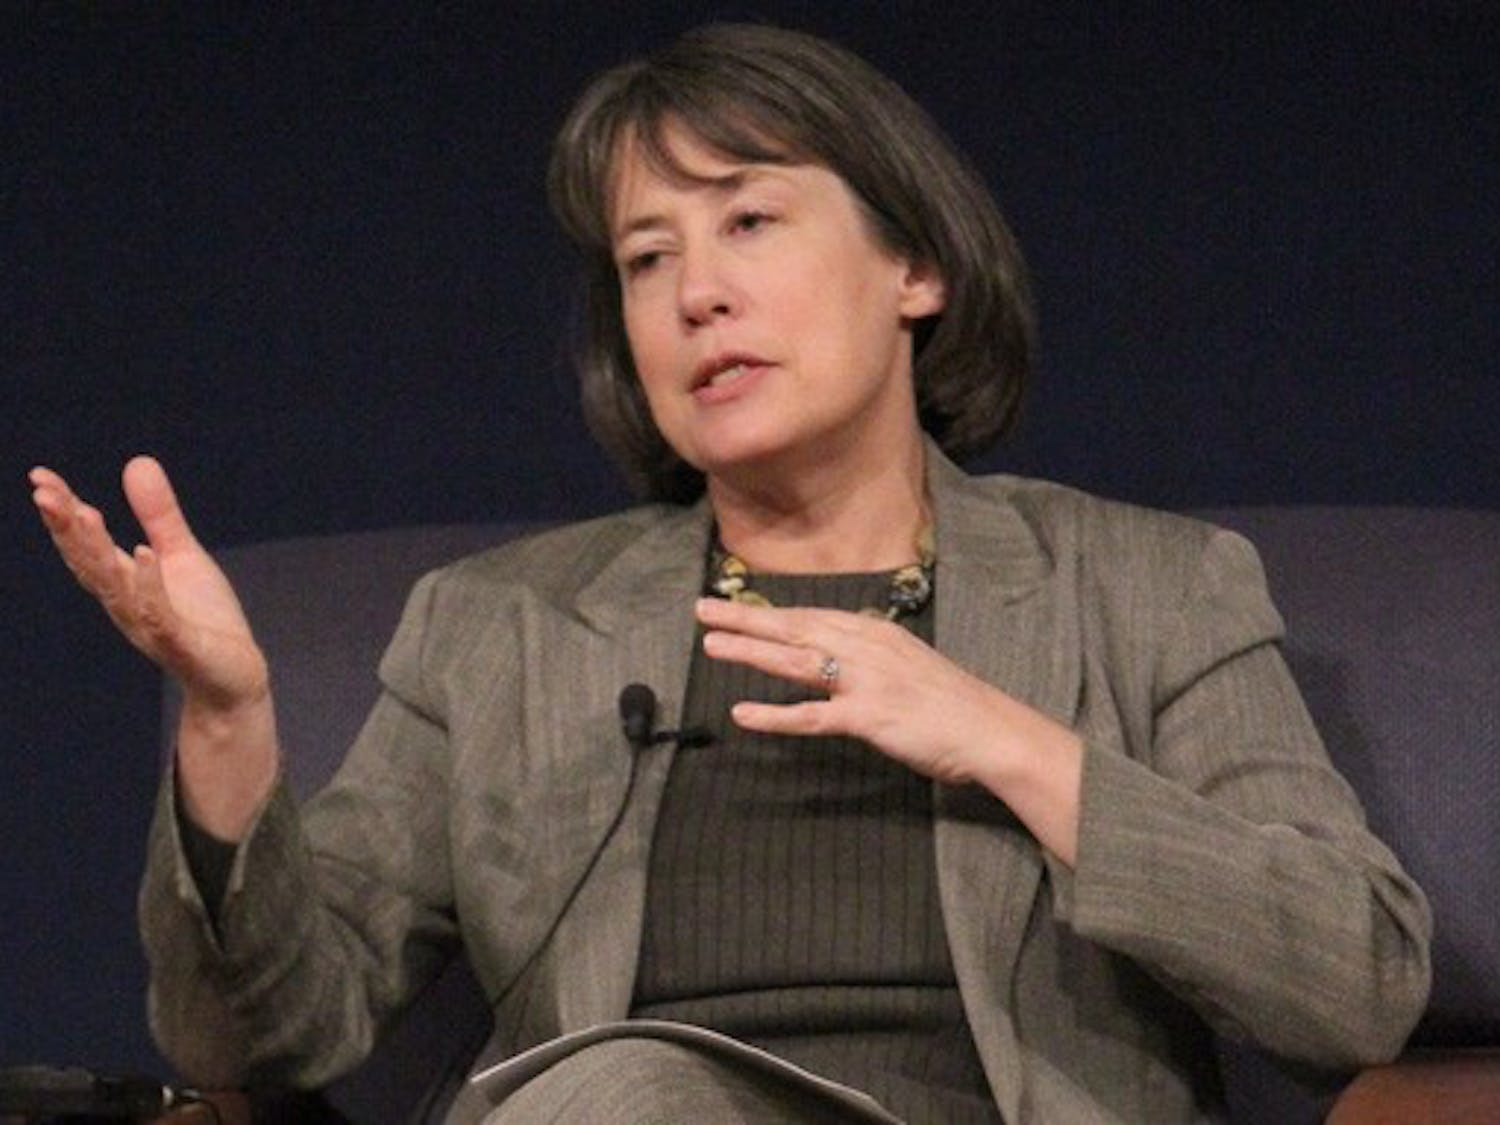 Chairman of the Federal Deposit Insurance Corporation Sheila Bair discussed Tuesday the various failures that led to the financial crisis.